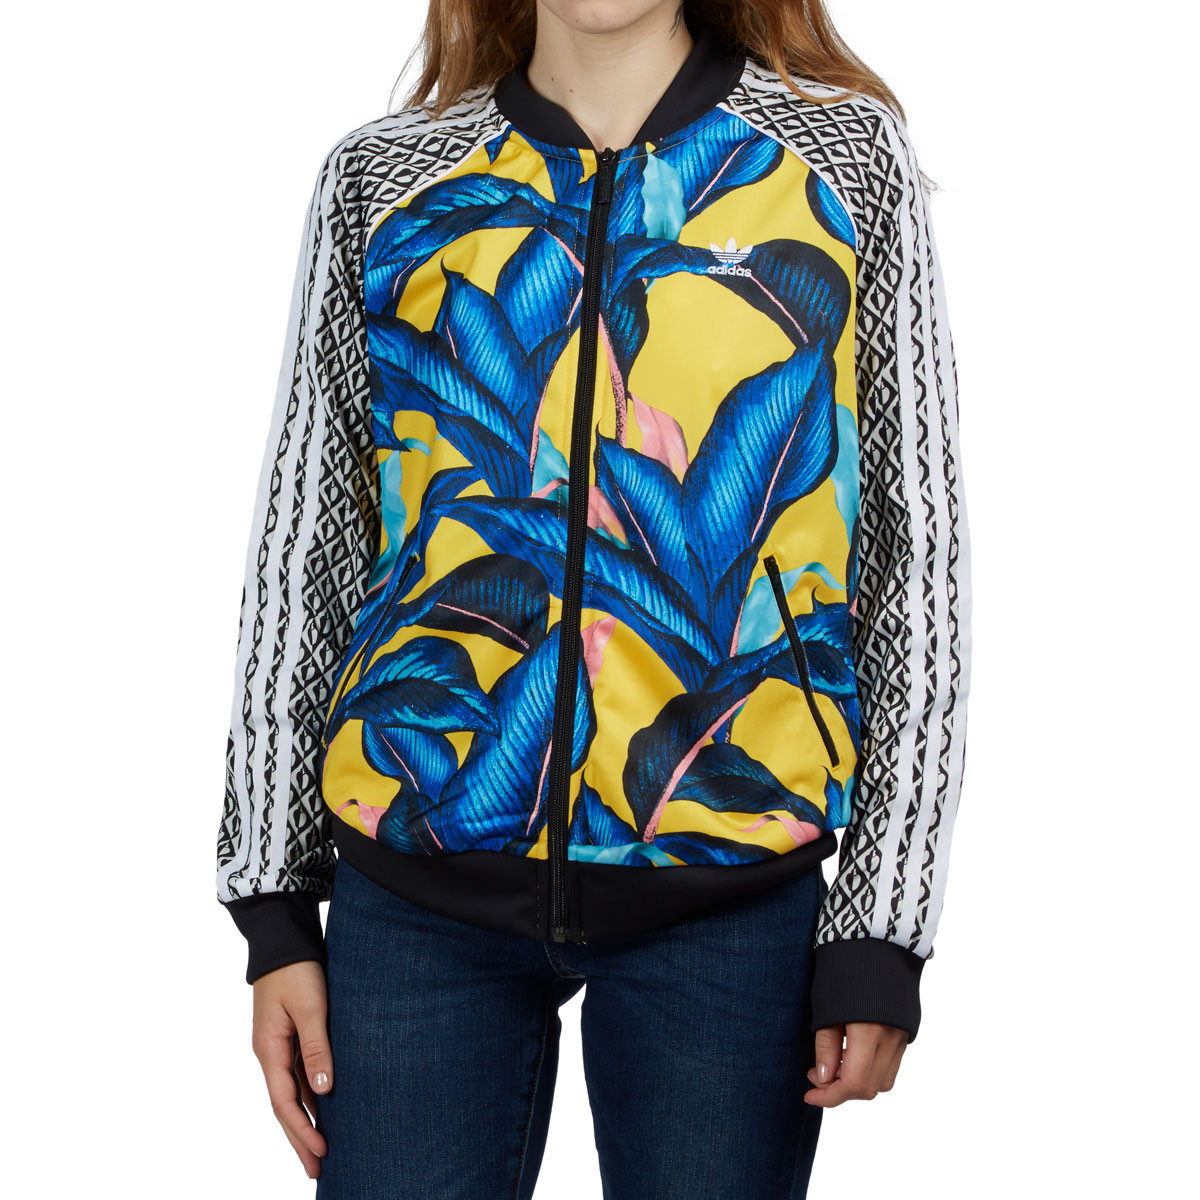 bbff0bc56 Adidas SST Womens Track Jacket - Multicolor/Blue